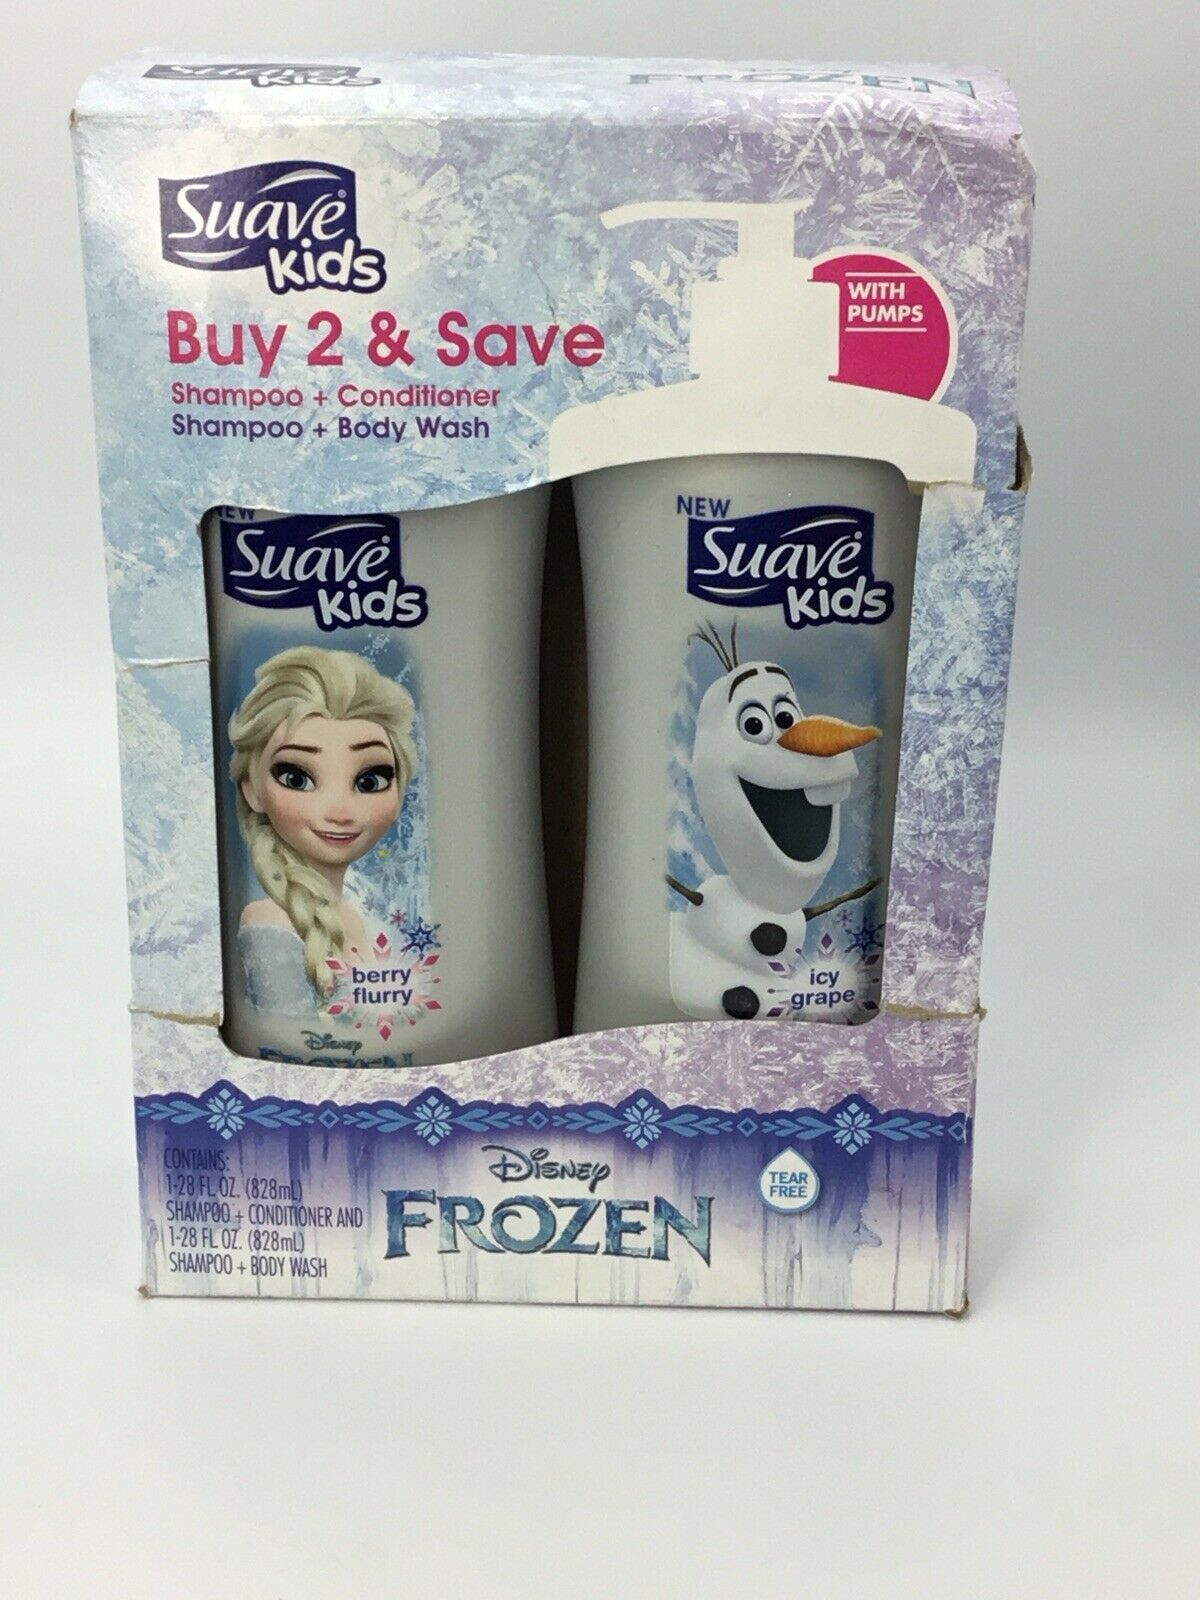 Suave Kids Frozen Shampoo / Conditioner and Body Wash with Pumps 28FL OZ Each